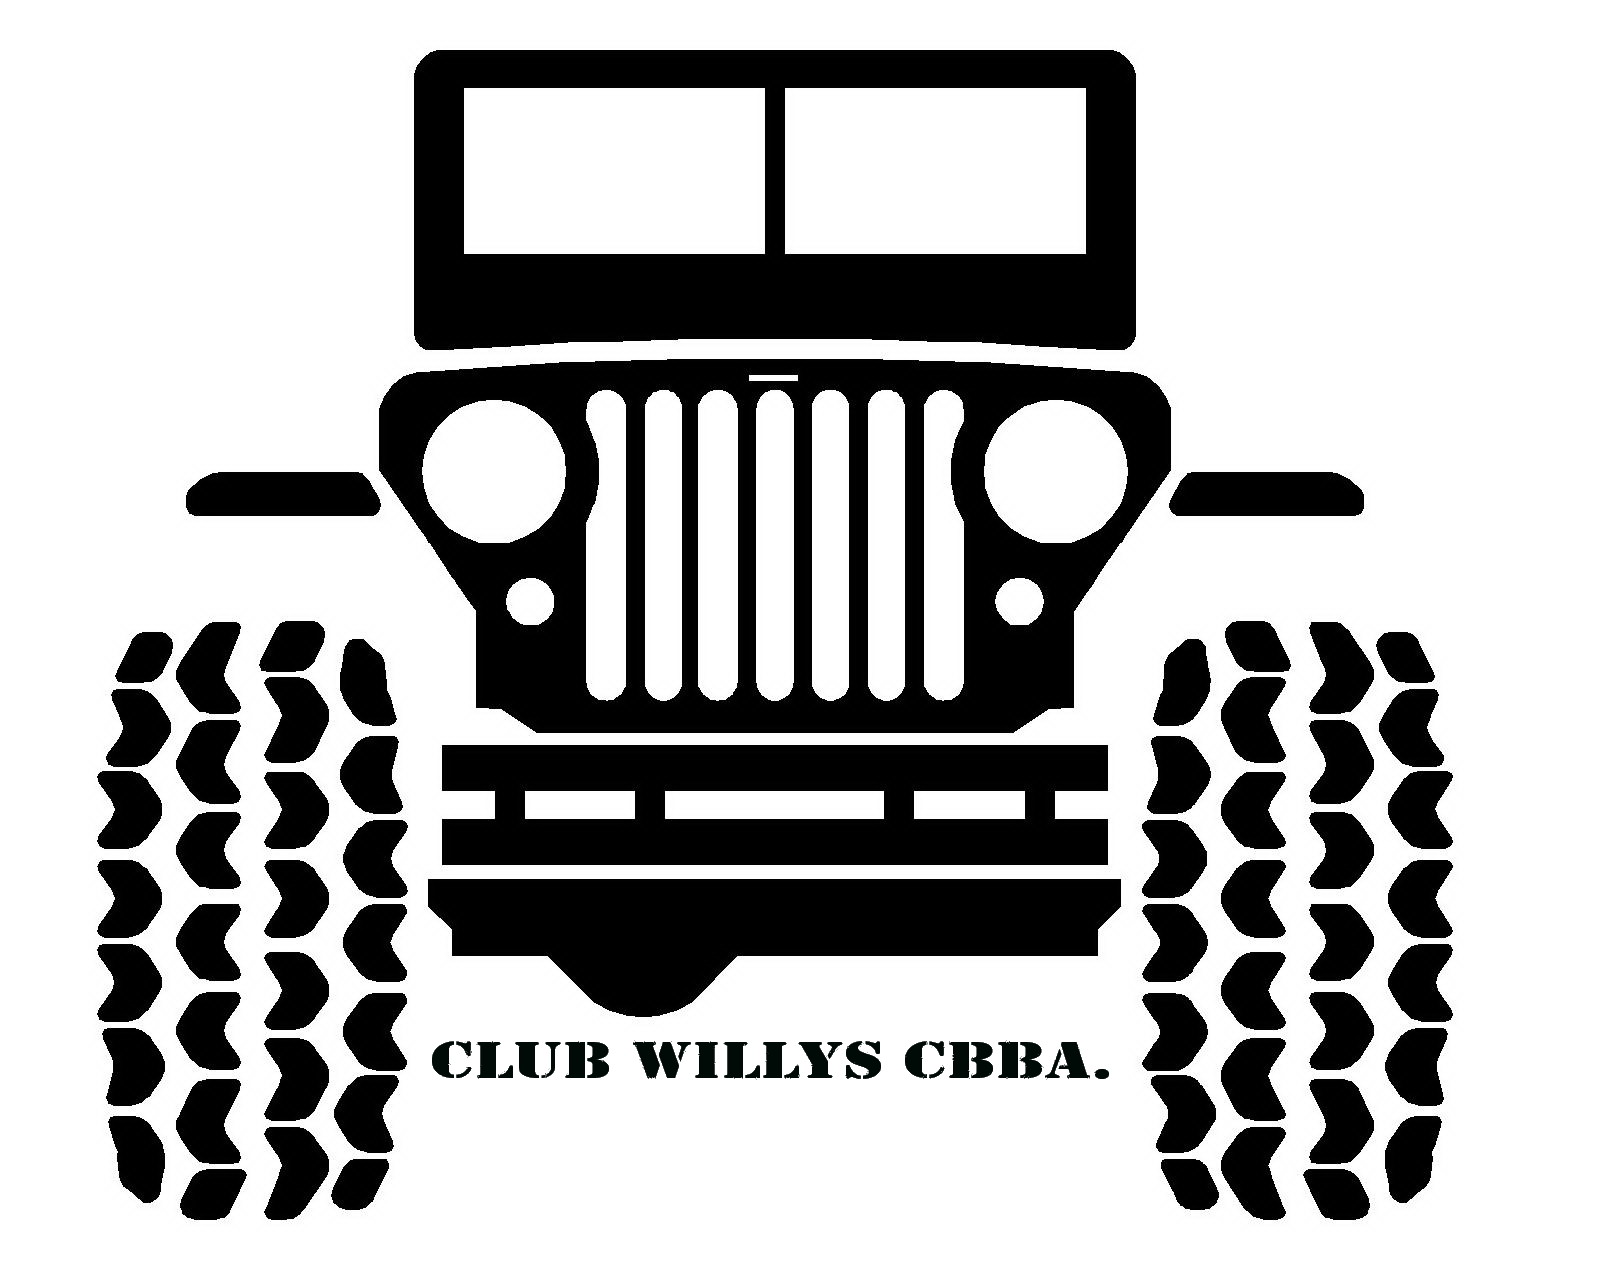 Jeep Grill Silhouette - Bing images